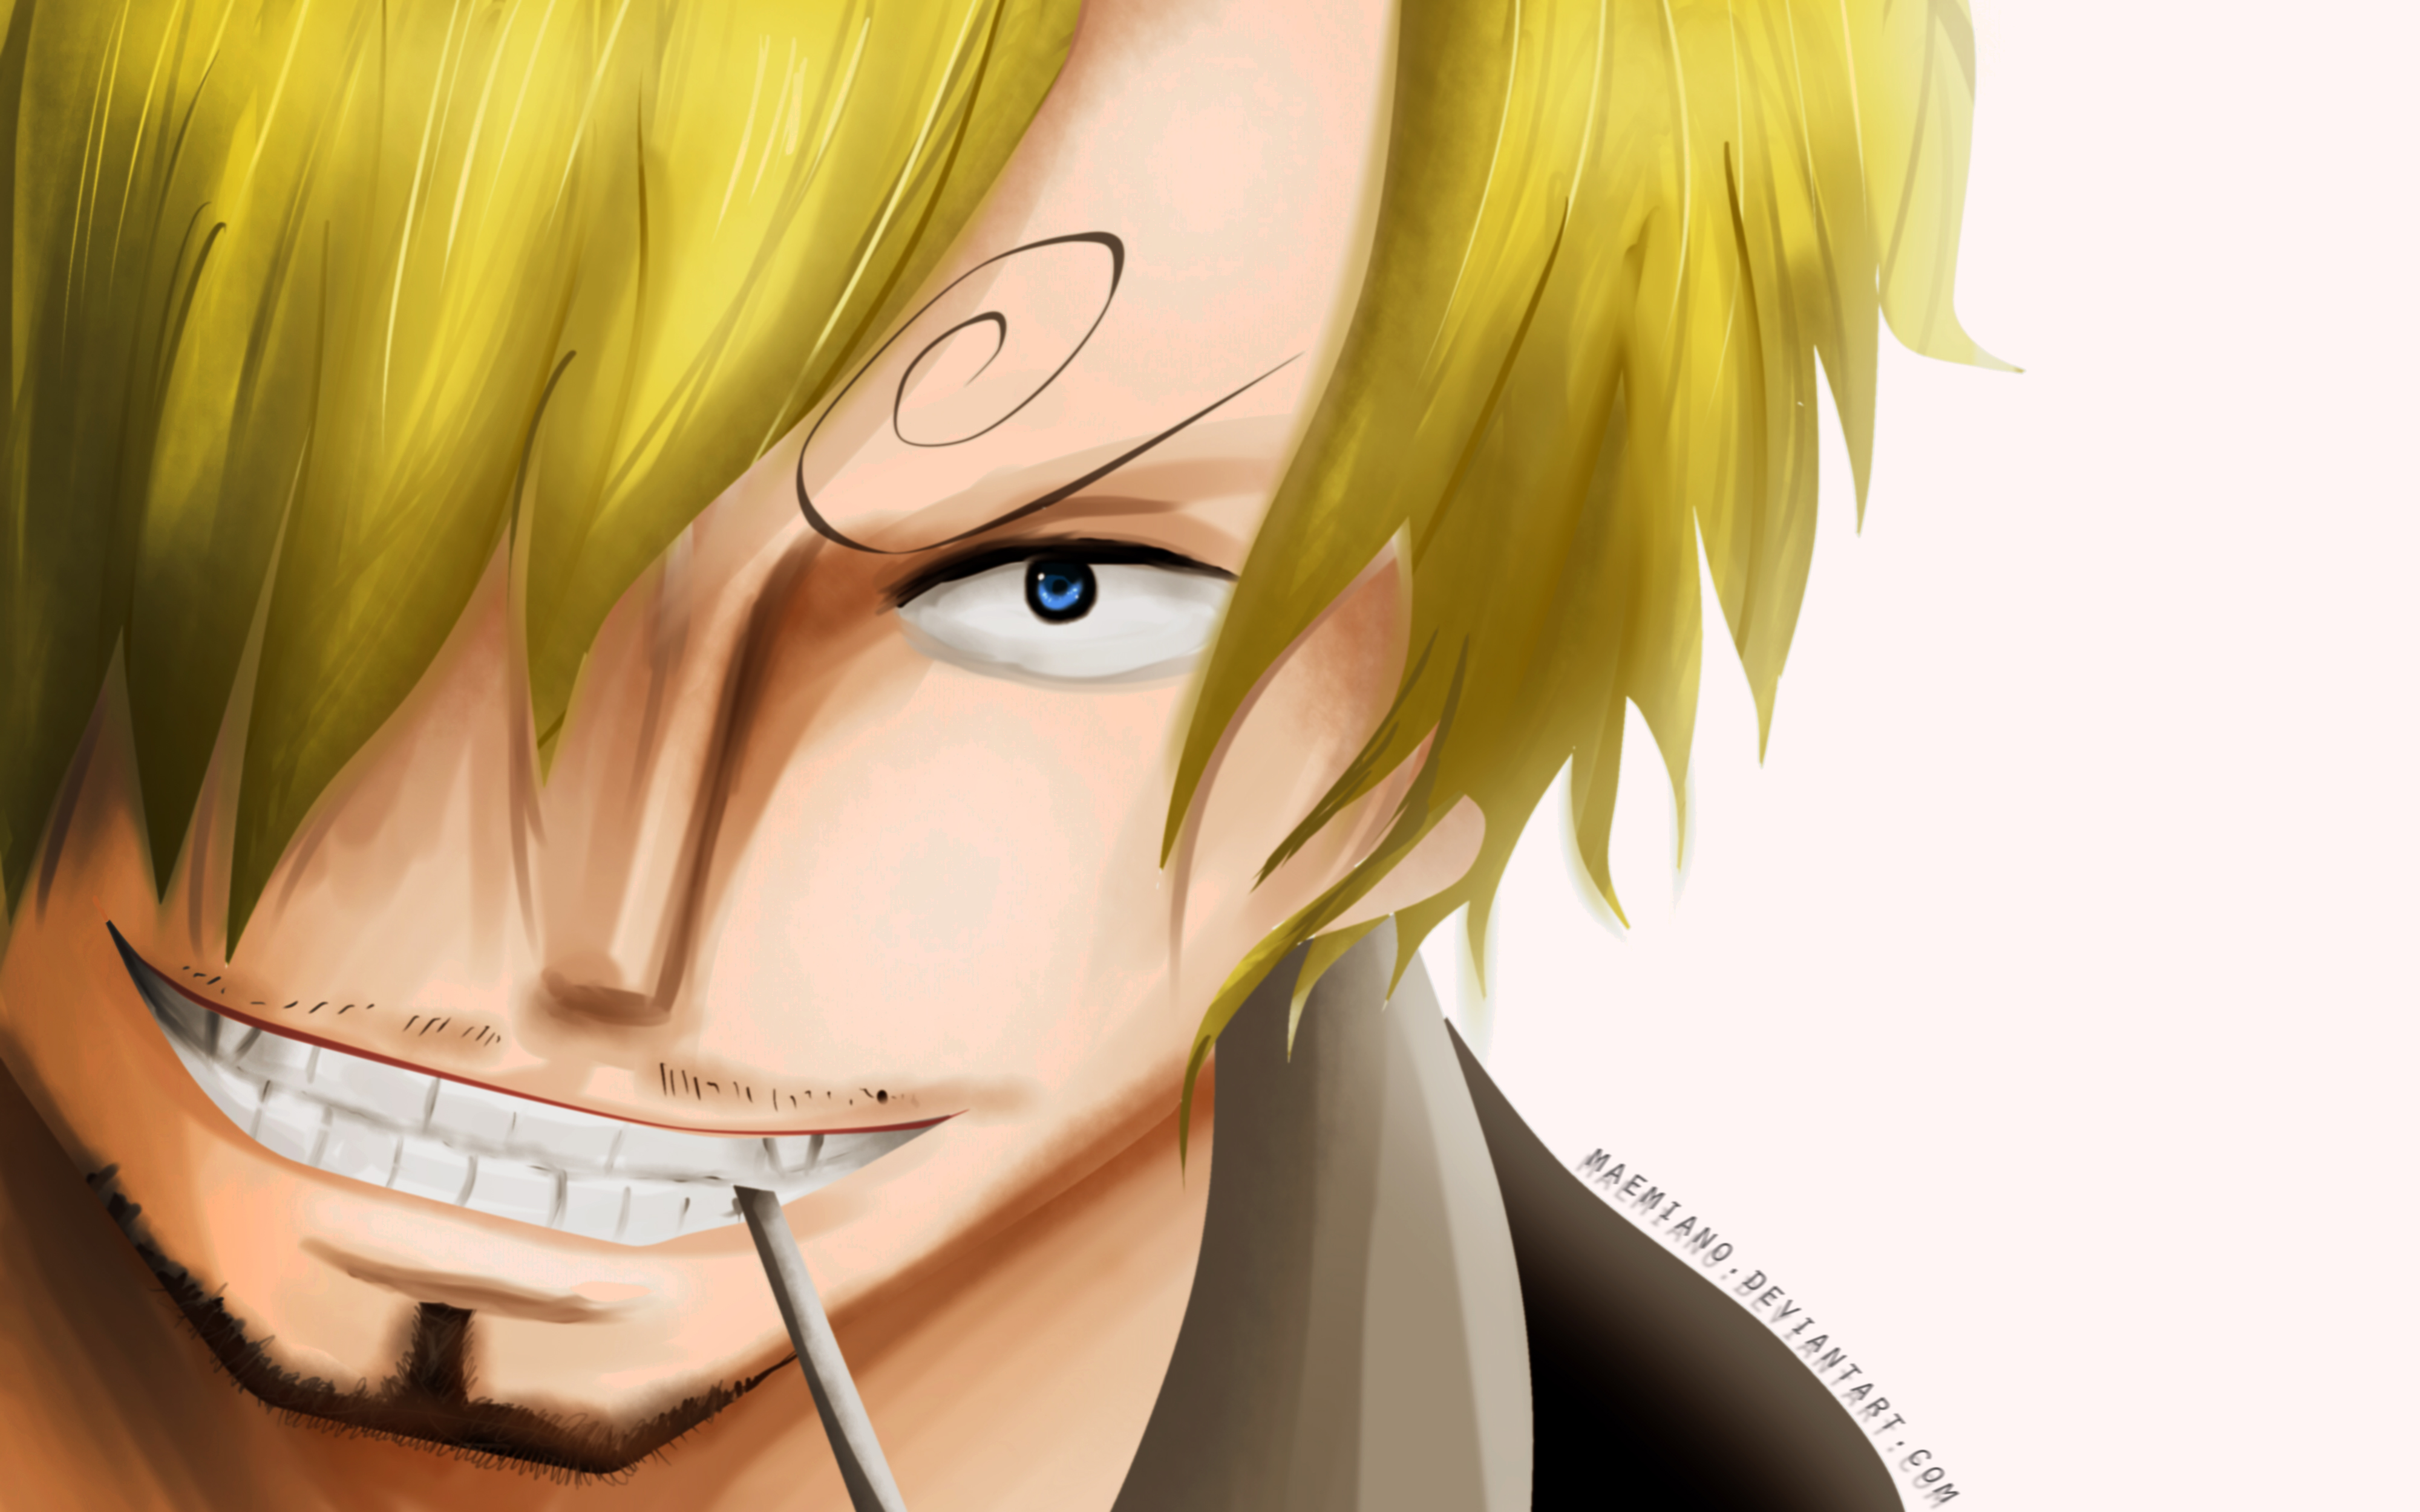 Sanji One Piece Hd Wallpaper 1592569 Zerochan Anime Image Board